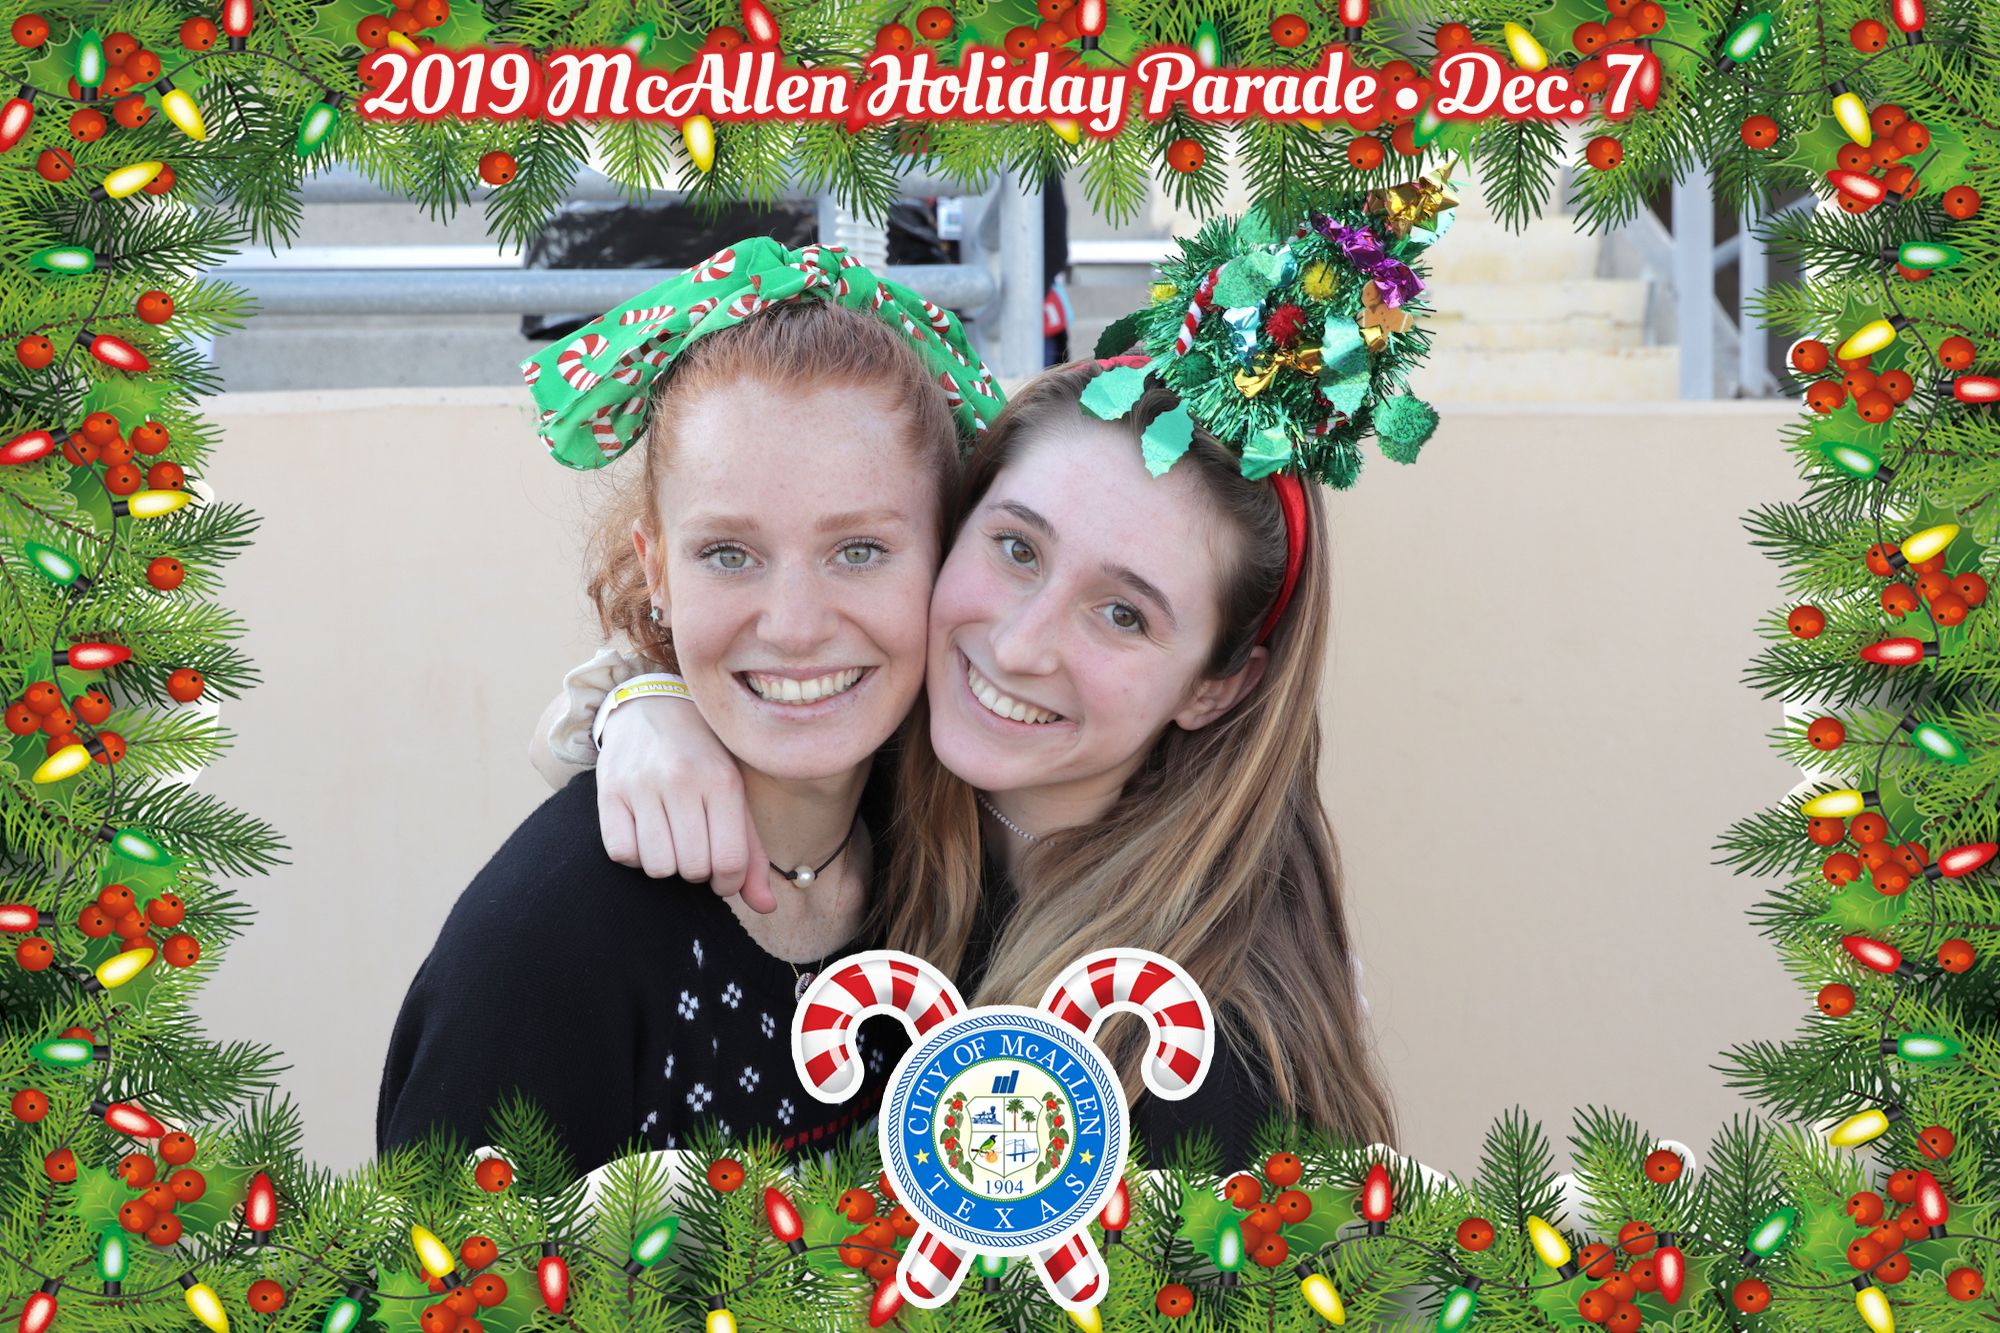 McAllen Holiday Parade December 7, 2019 – Gallery 3